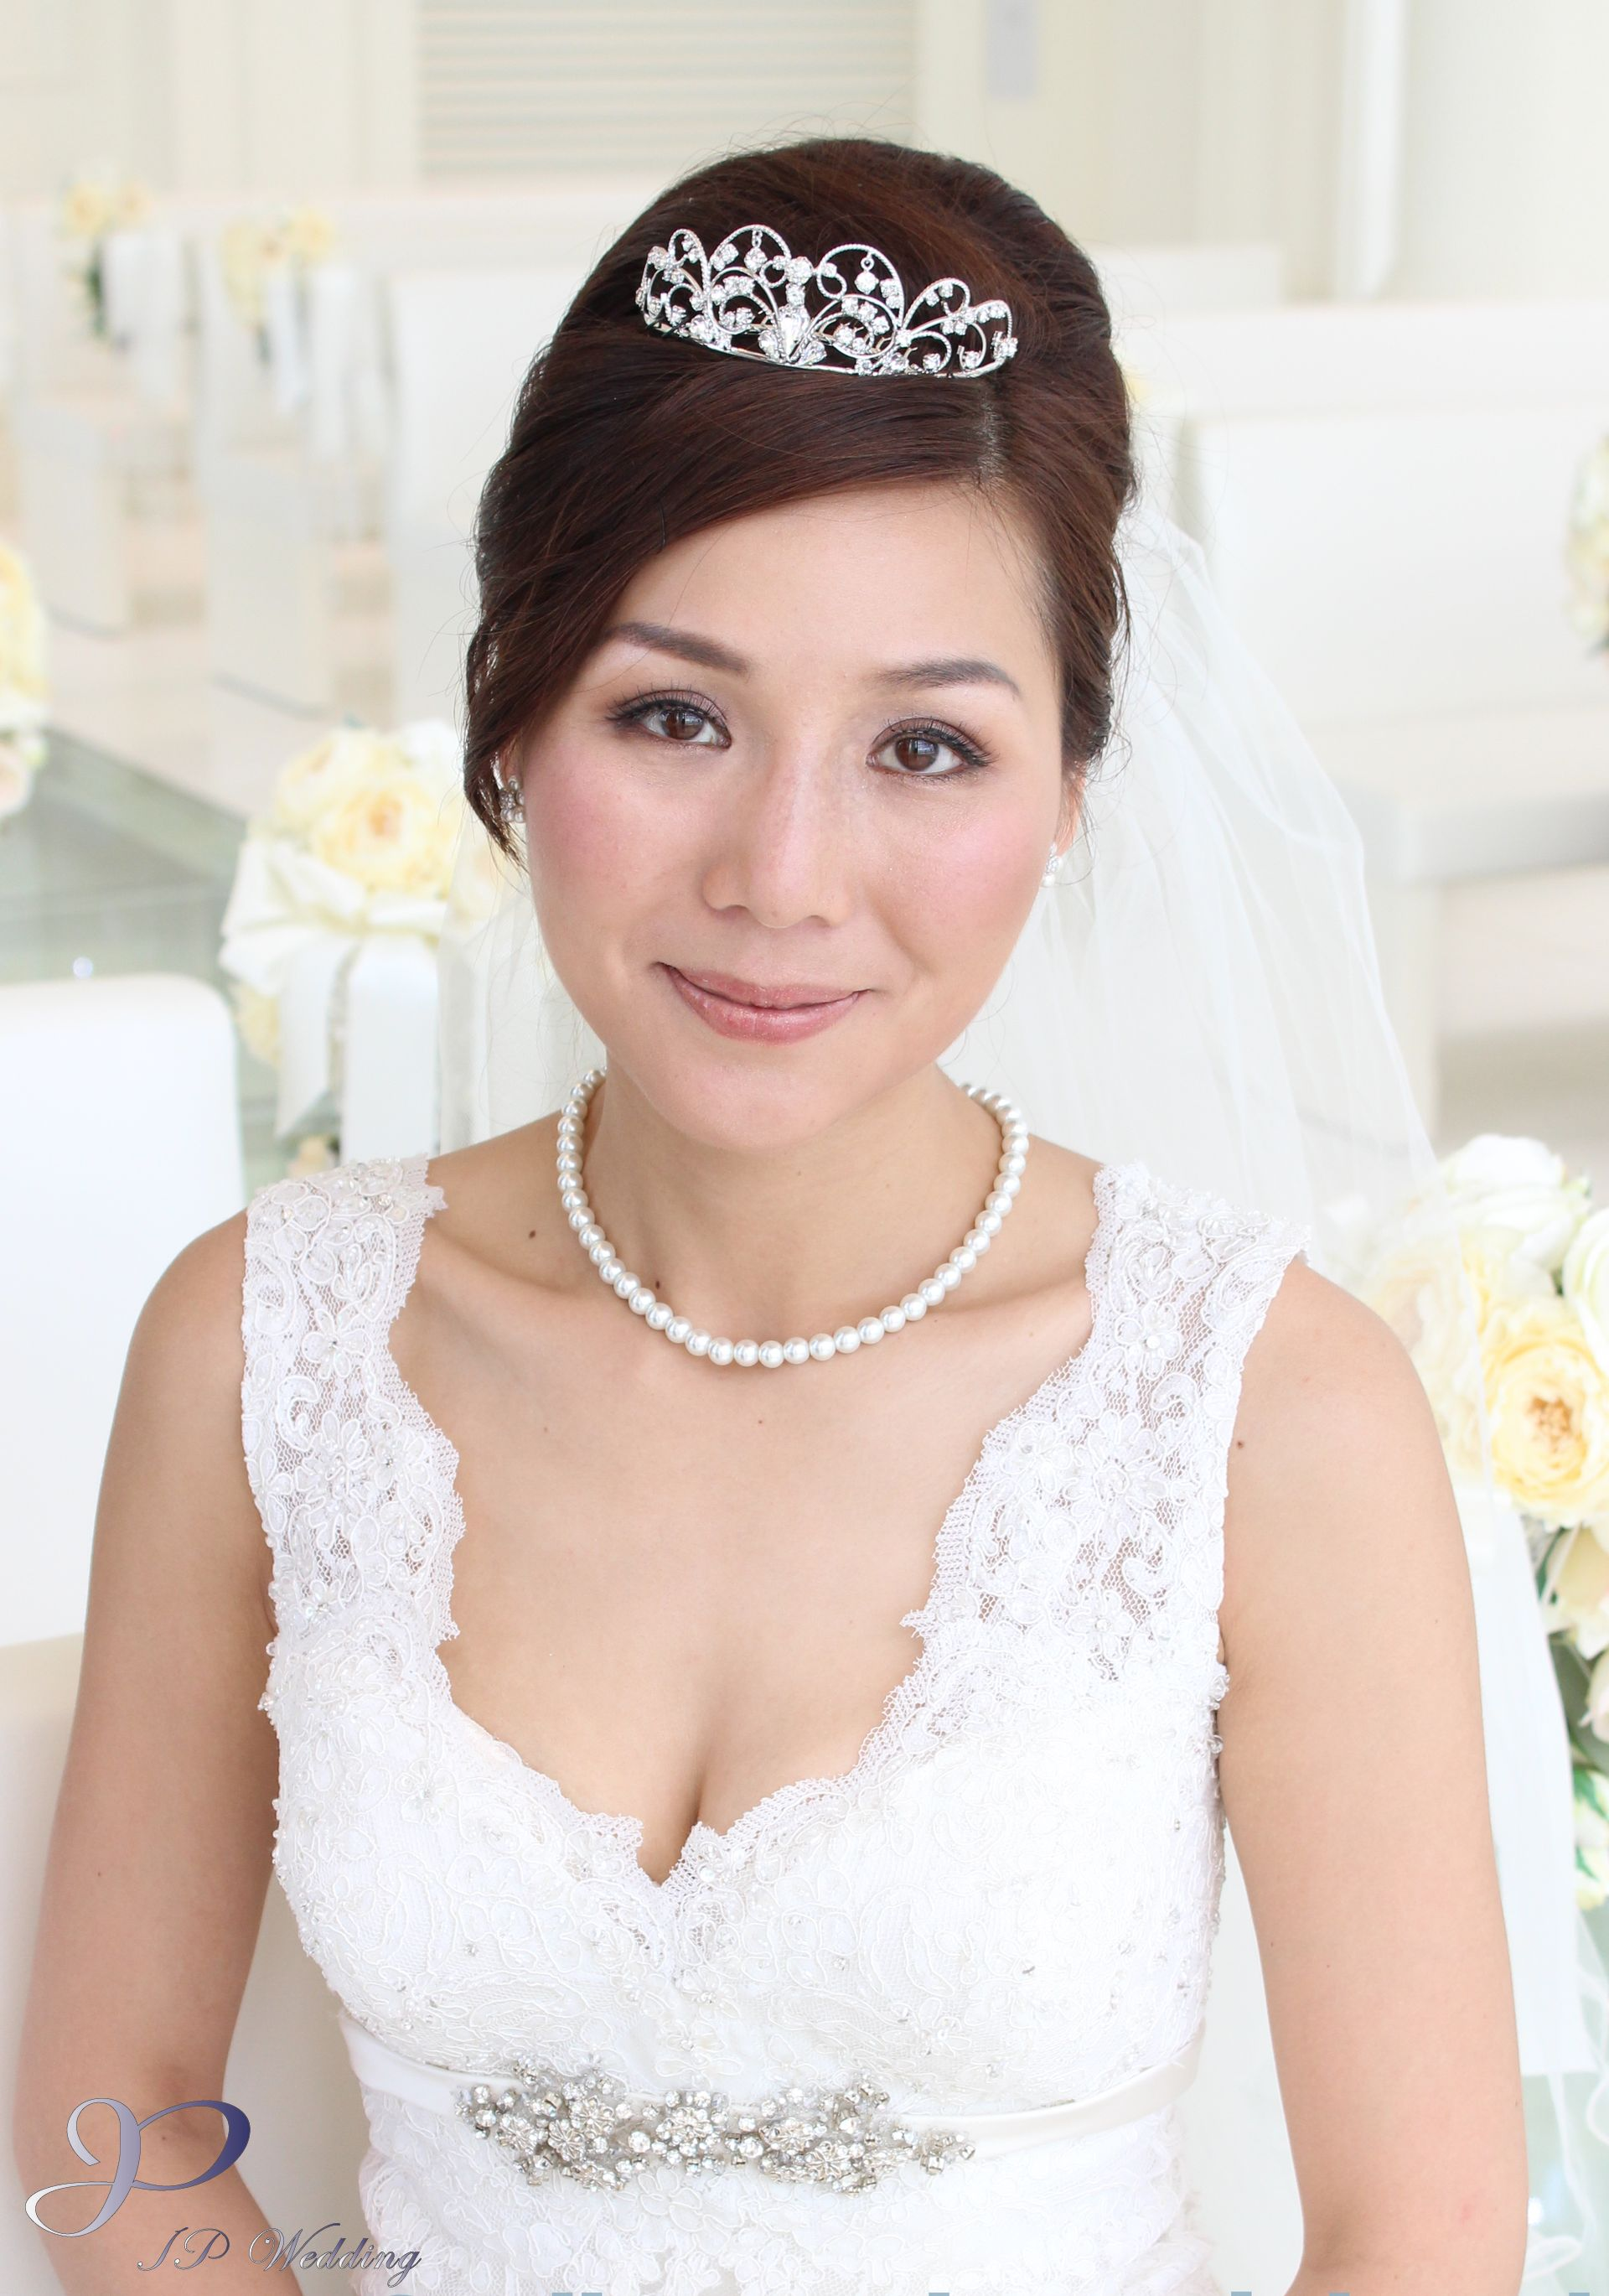 沖繩化妝okinawa prewedding bridal makeup